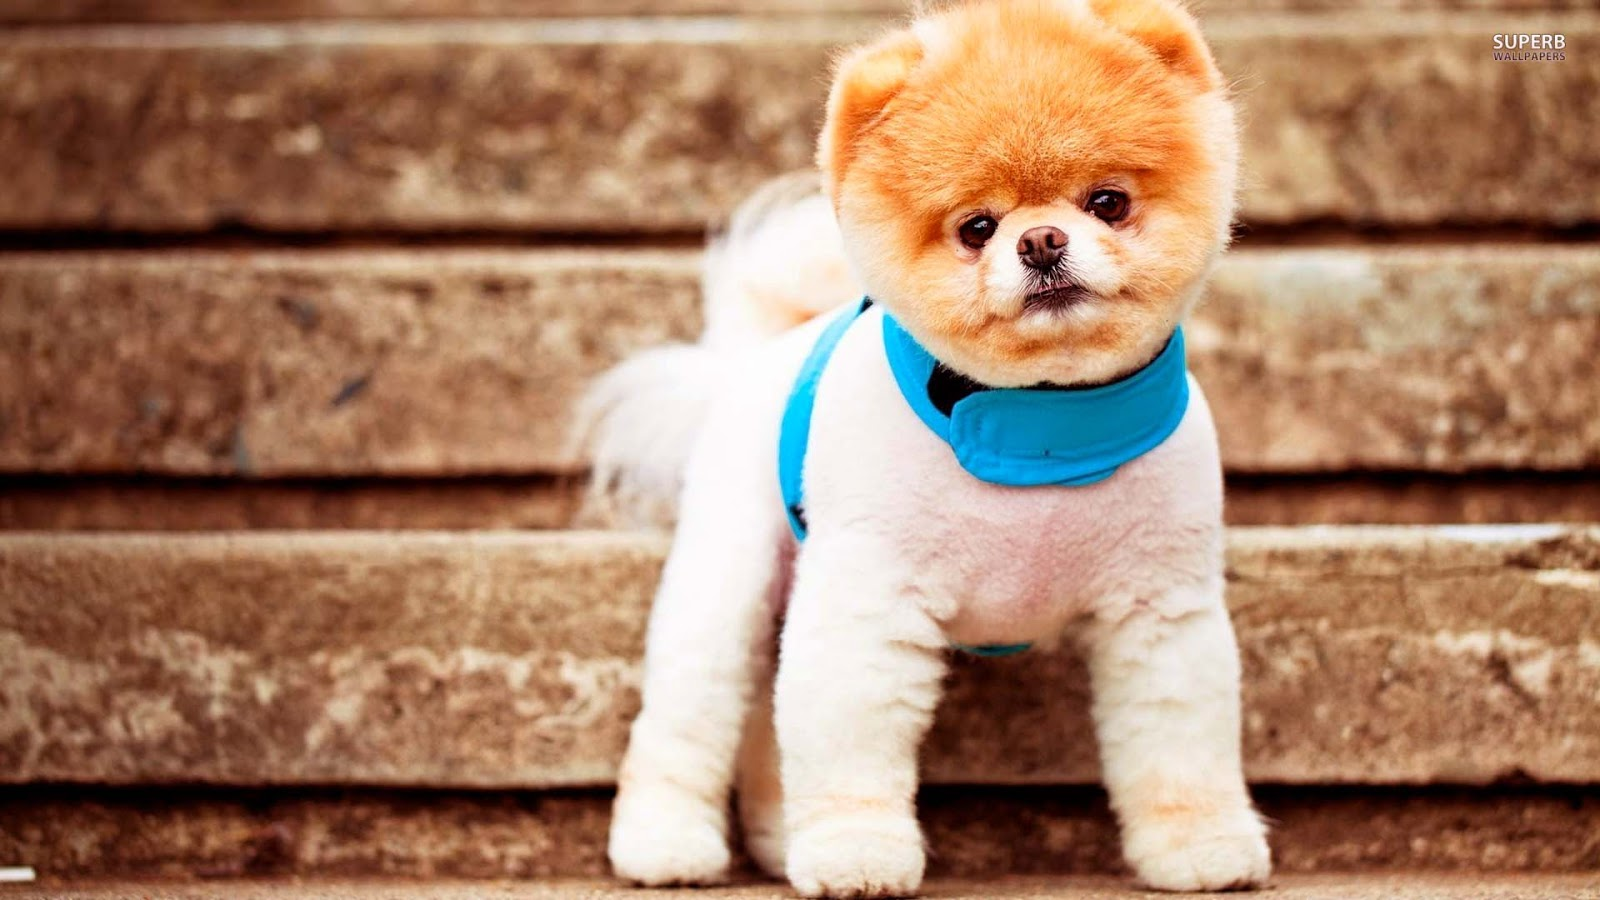 Cute Puppies Wallpapers Free Download free download